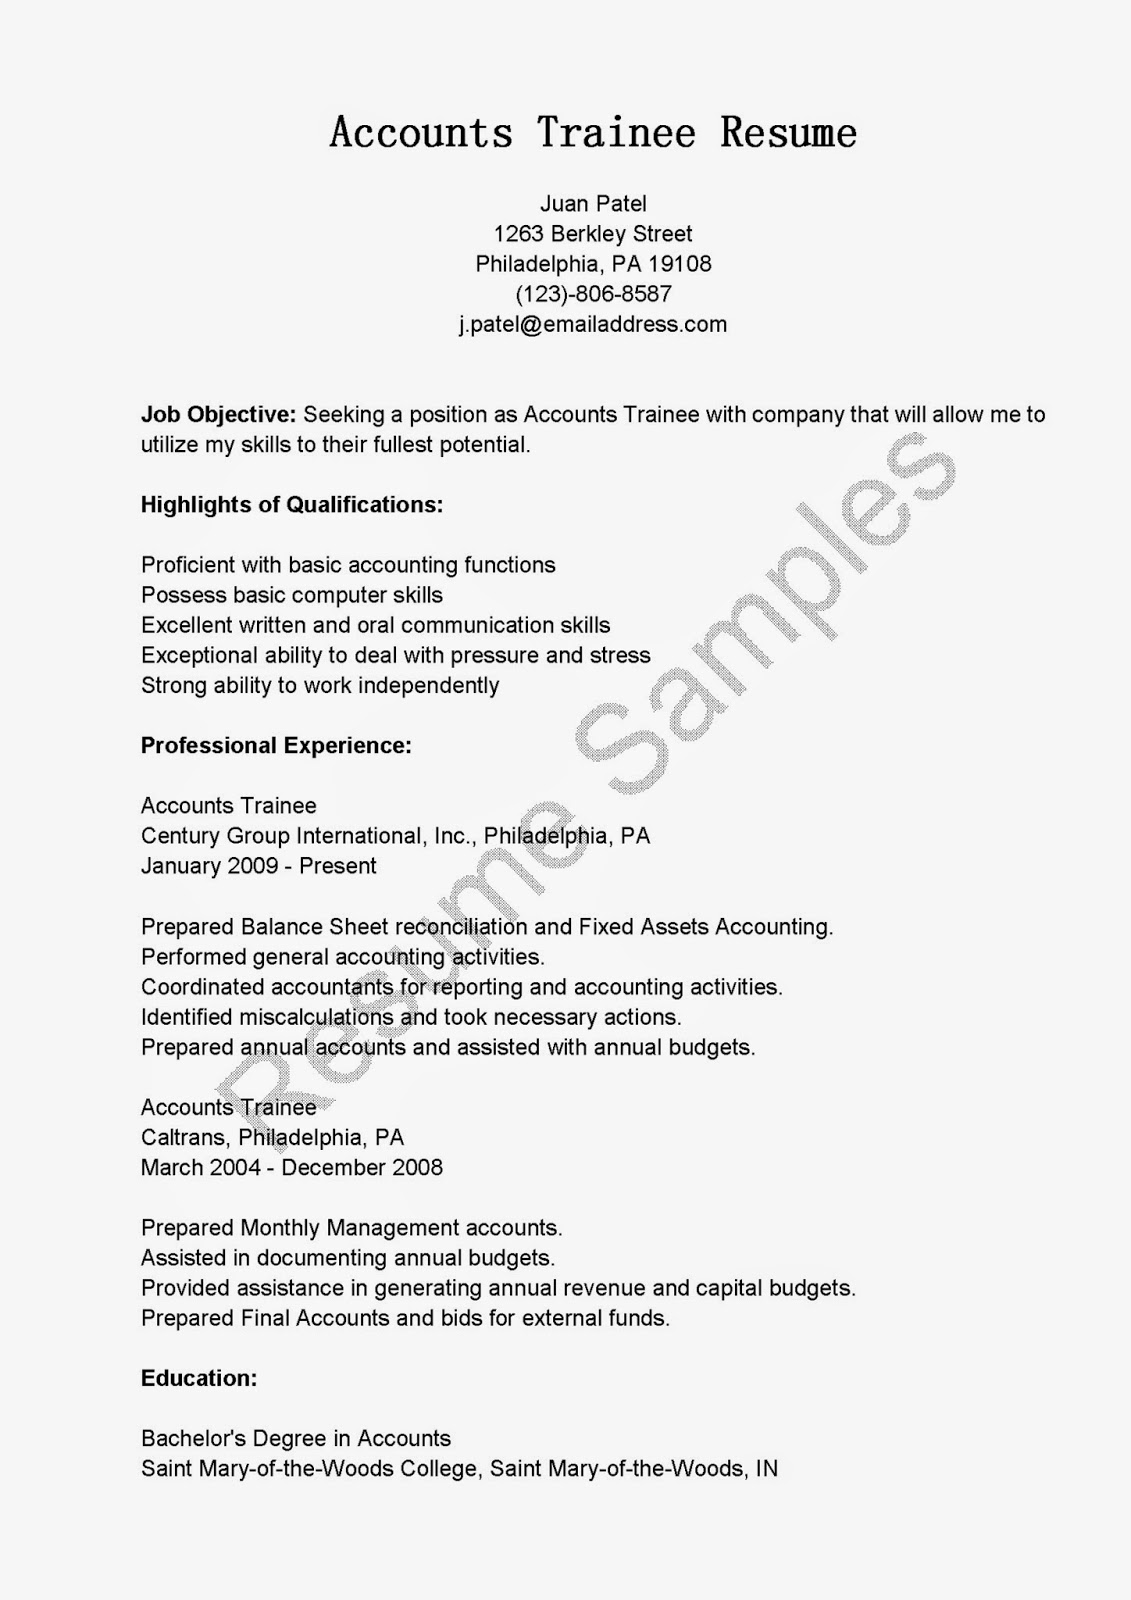 Resume Samples Accounts Trainee Resume Sample